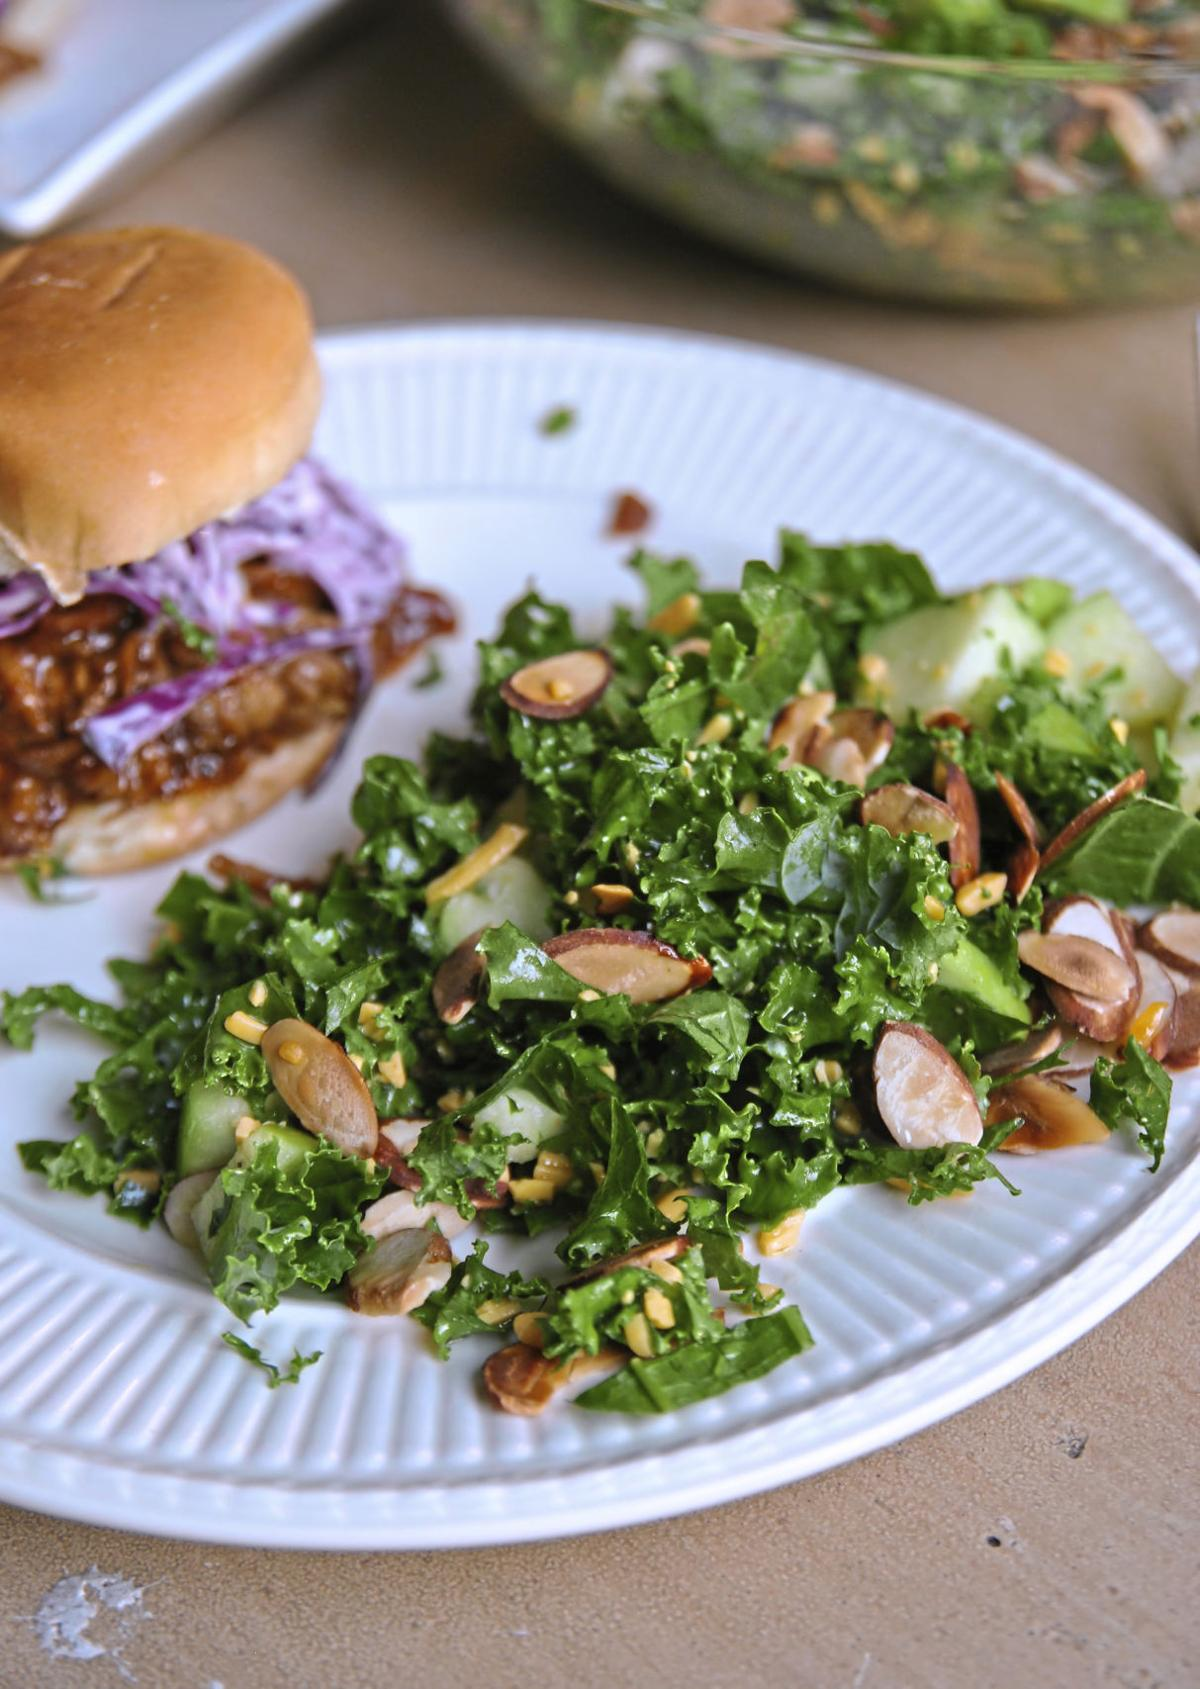 Kale and apple salad with toasted nuts